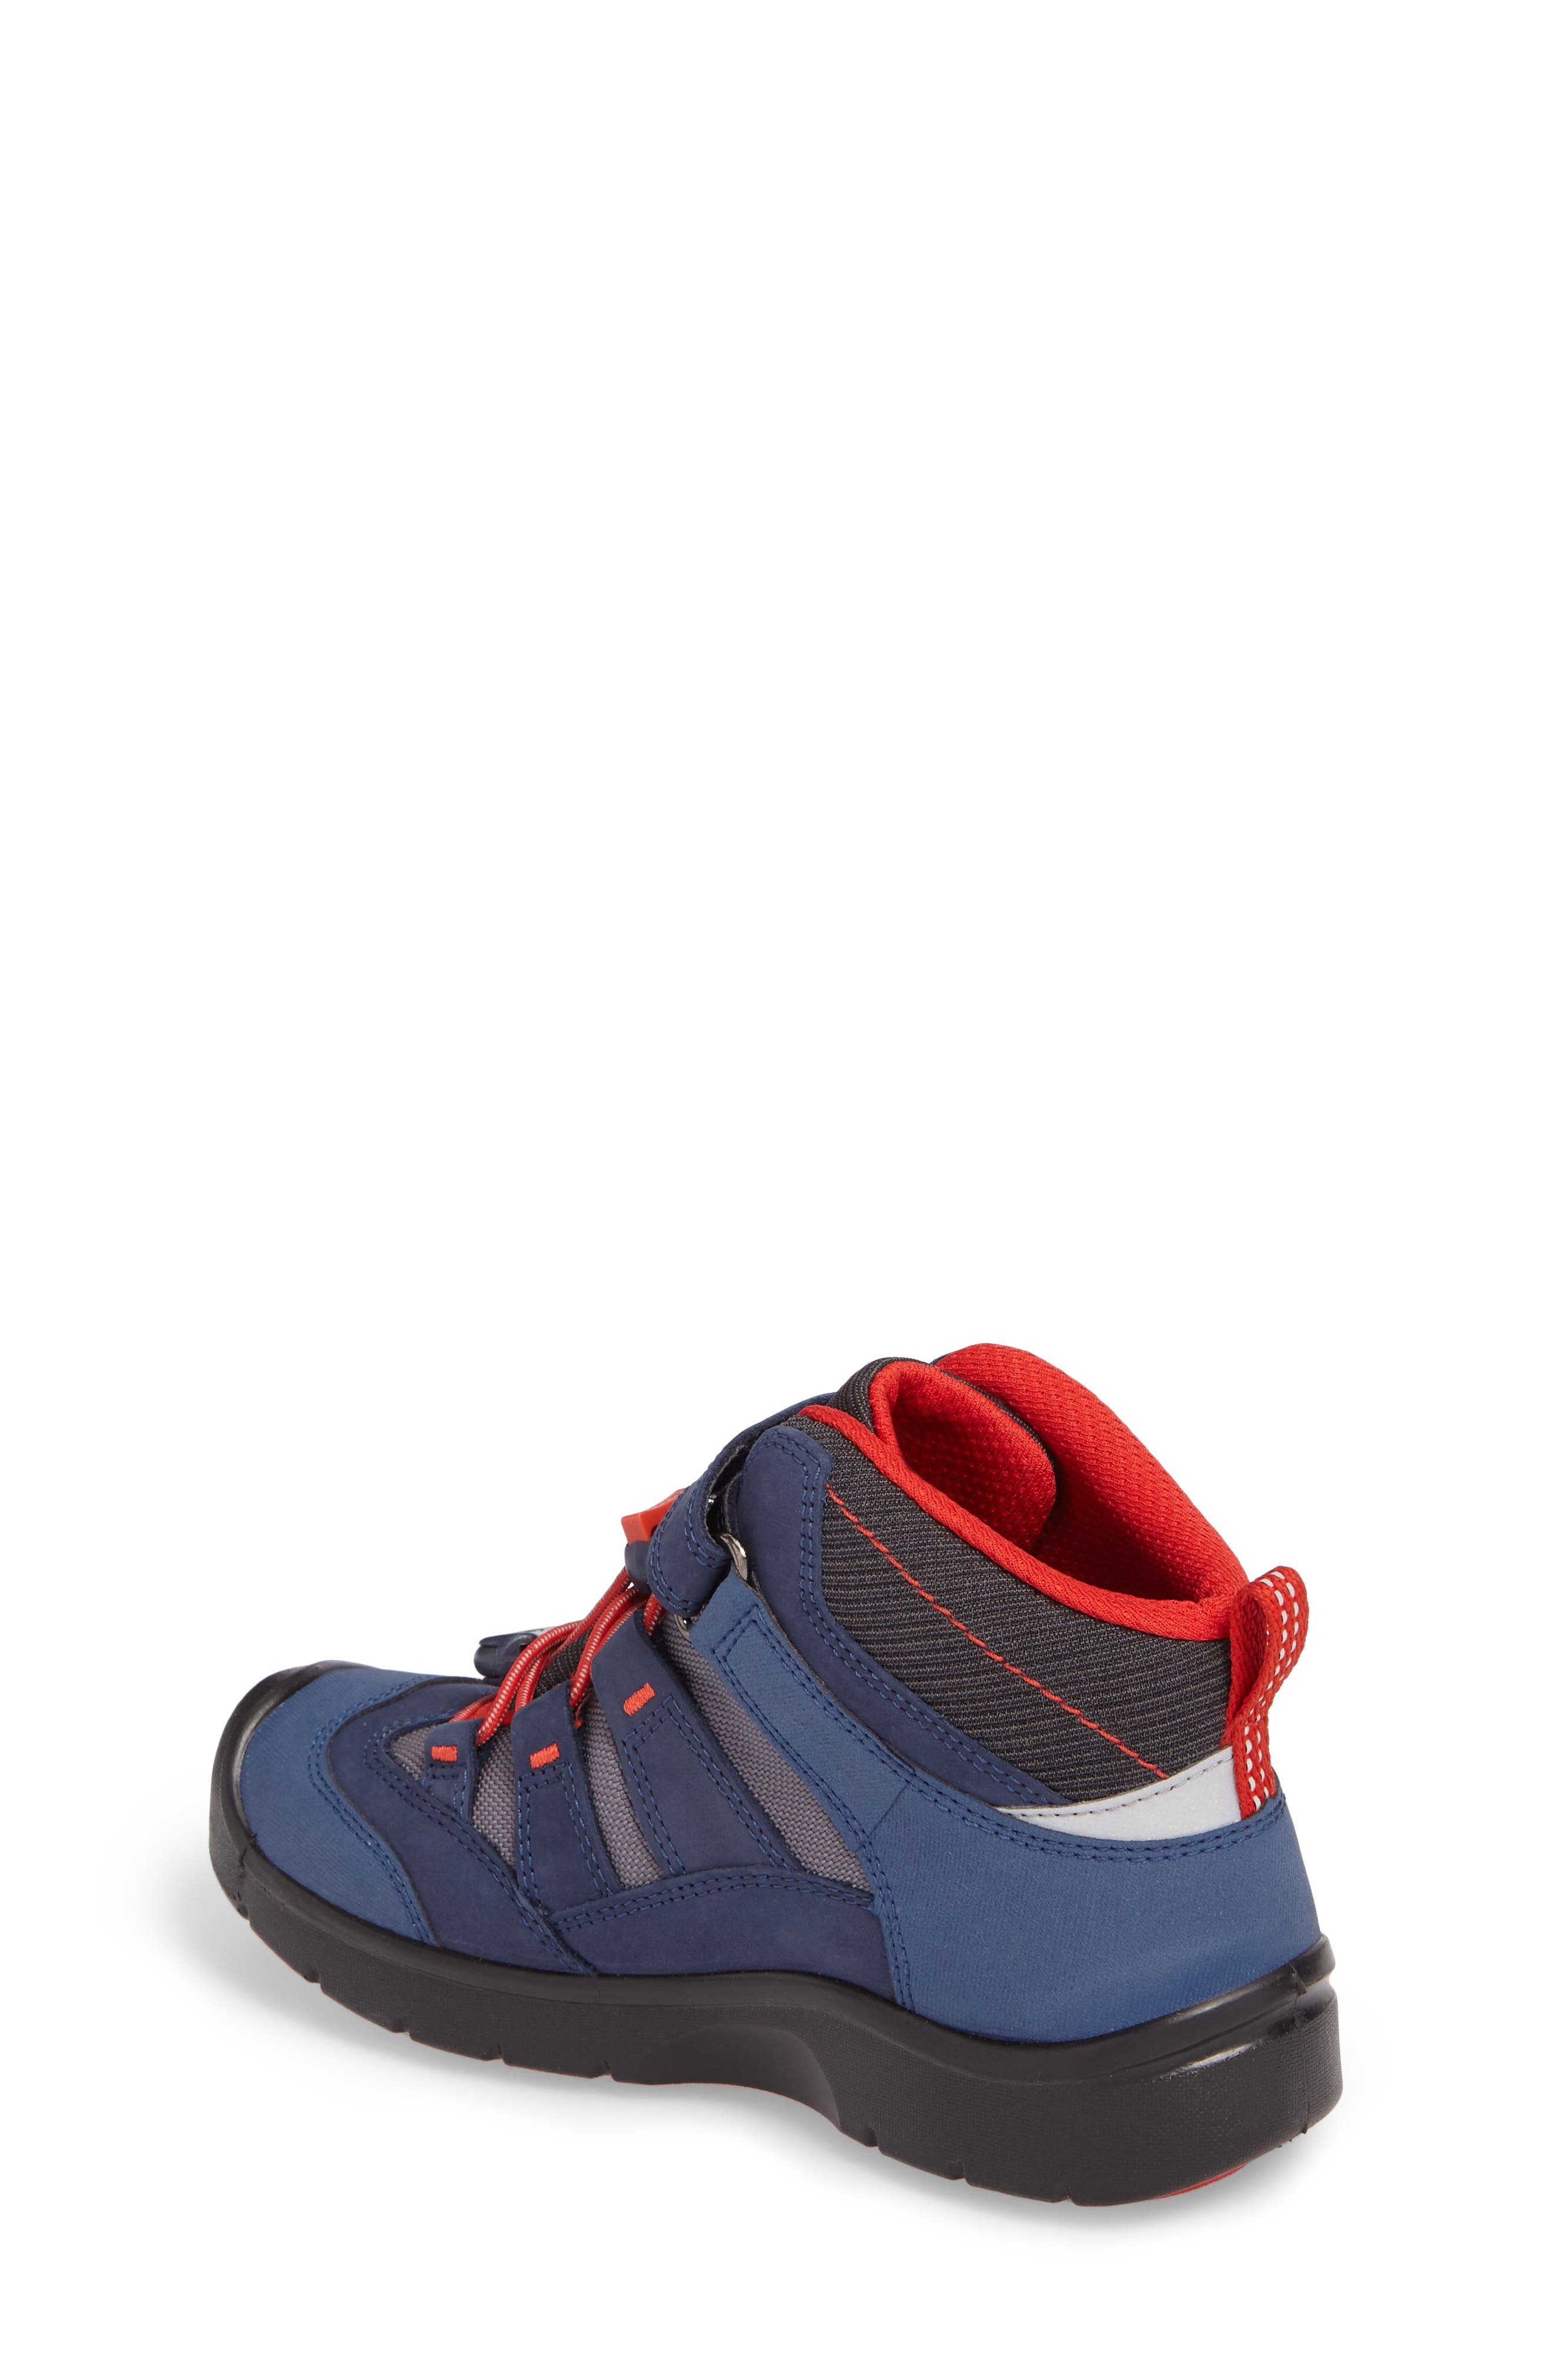 Hikeport Strap Waterproof Mid Boot,                             Alternate thumbnail 7, color,